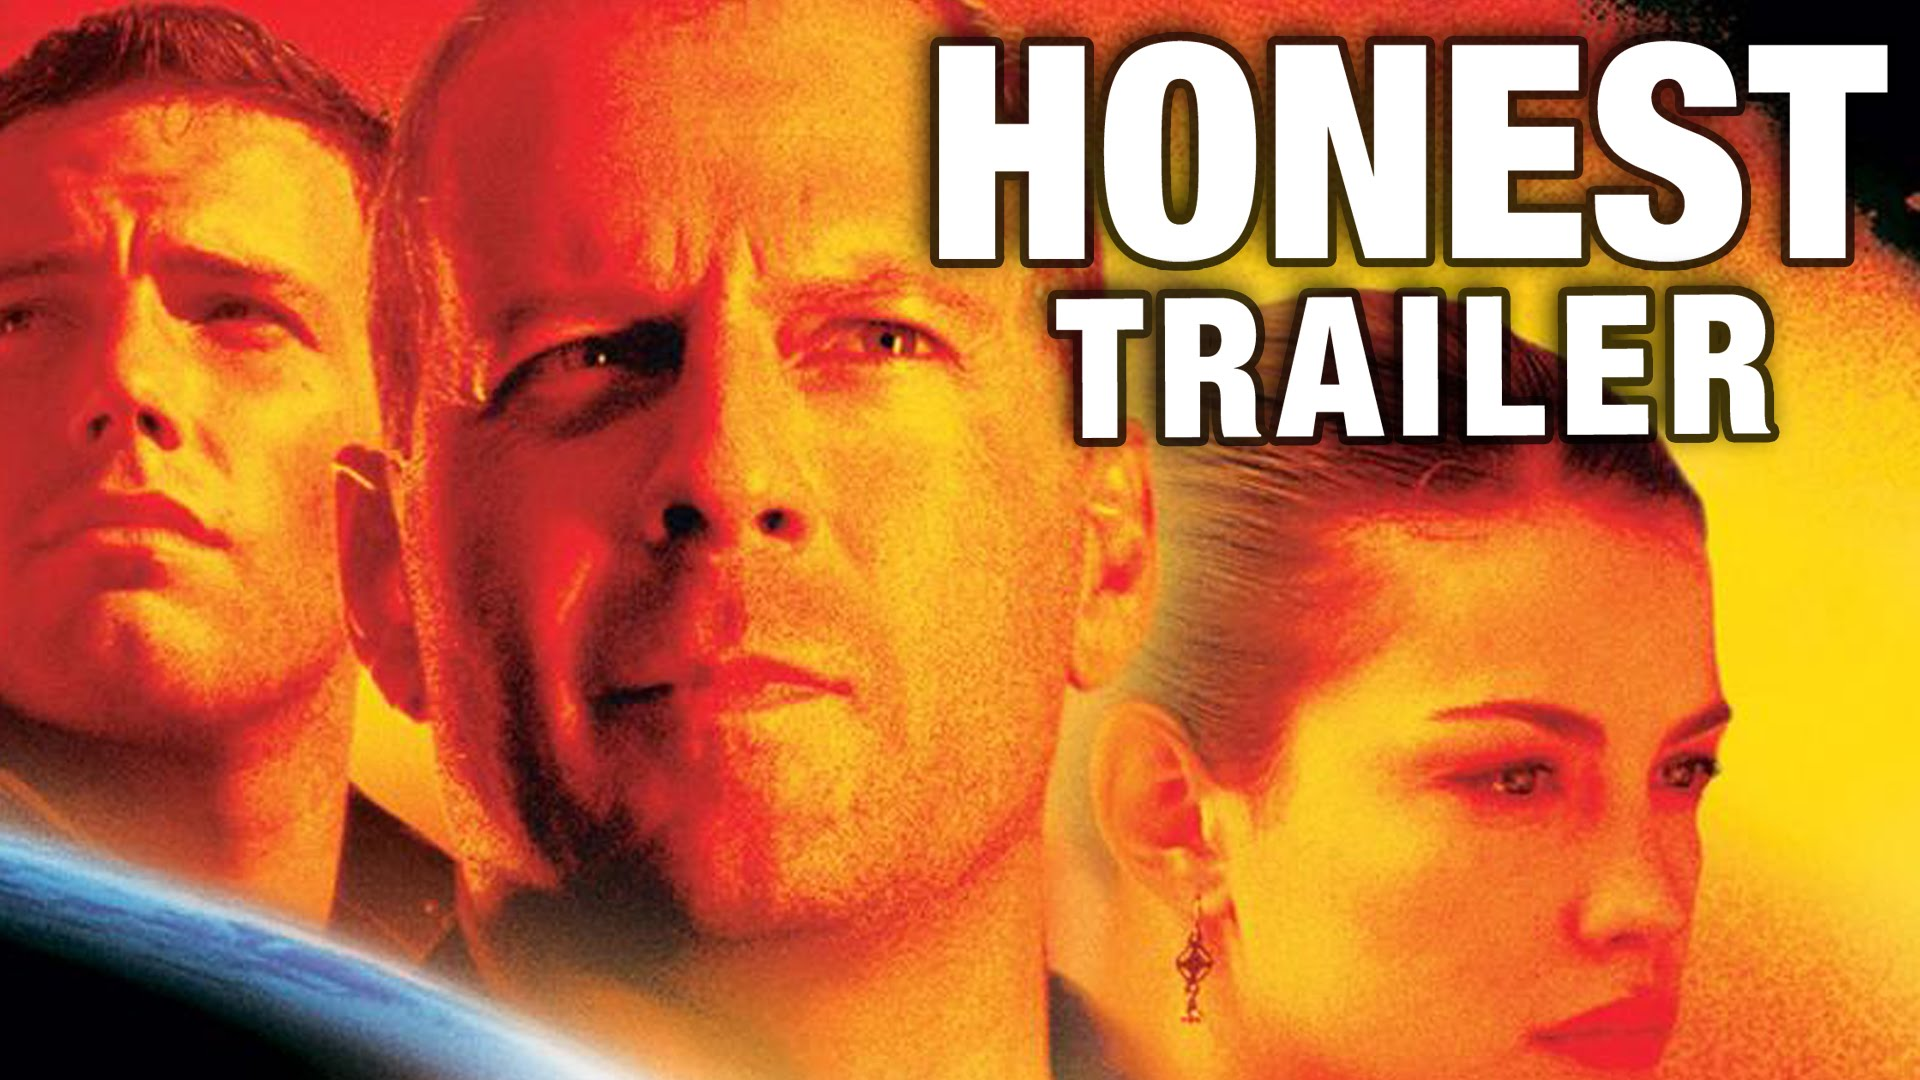 HONEST TRAILER: Armageddon | WMYK